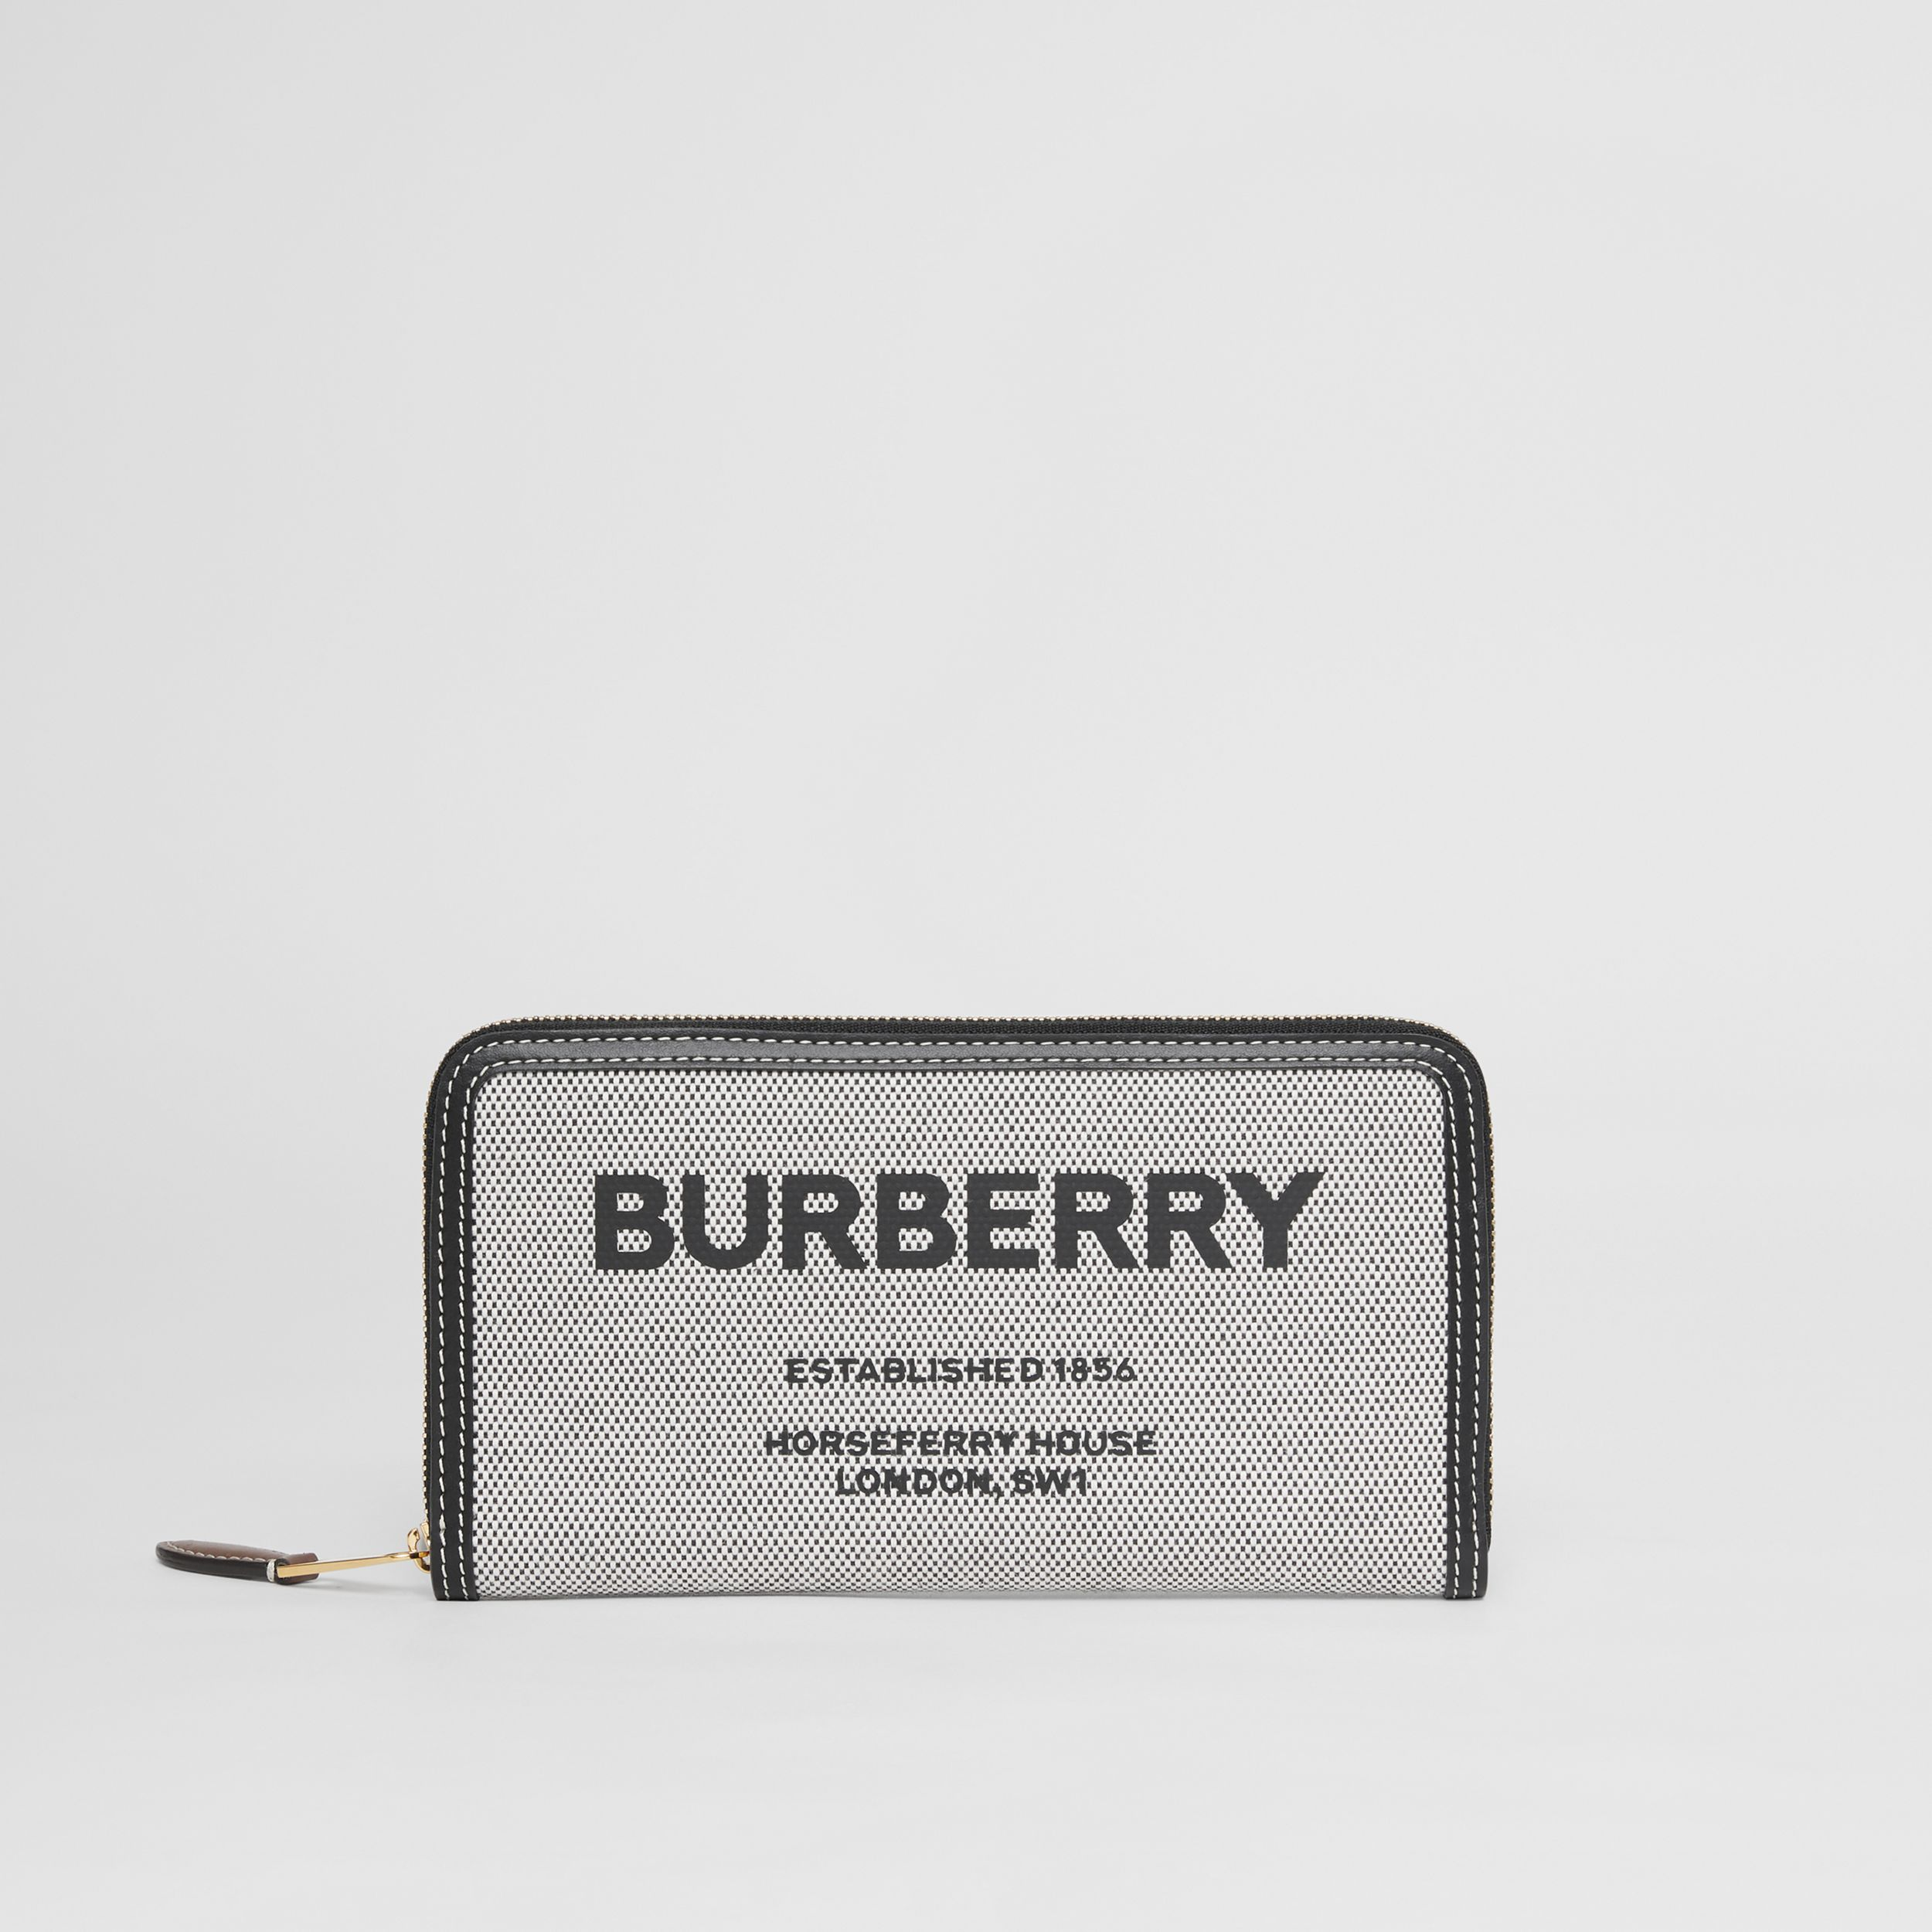 Horseferry Print Canvas and Leather Ziparound Wallet in Black/tan - Women | Burberry - 3